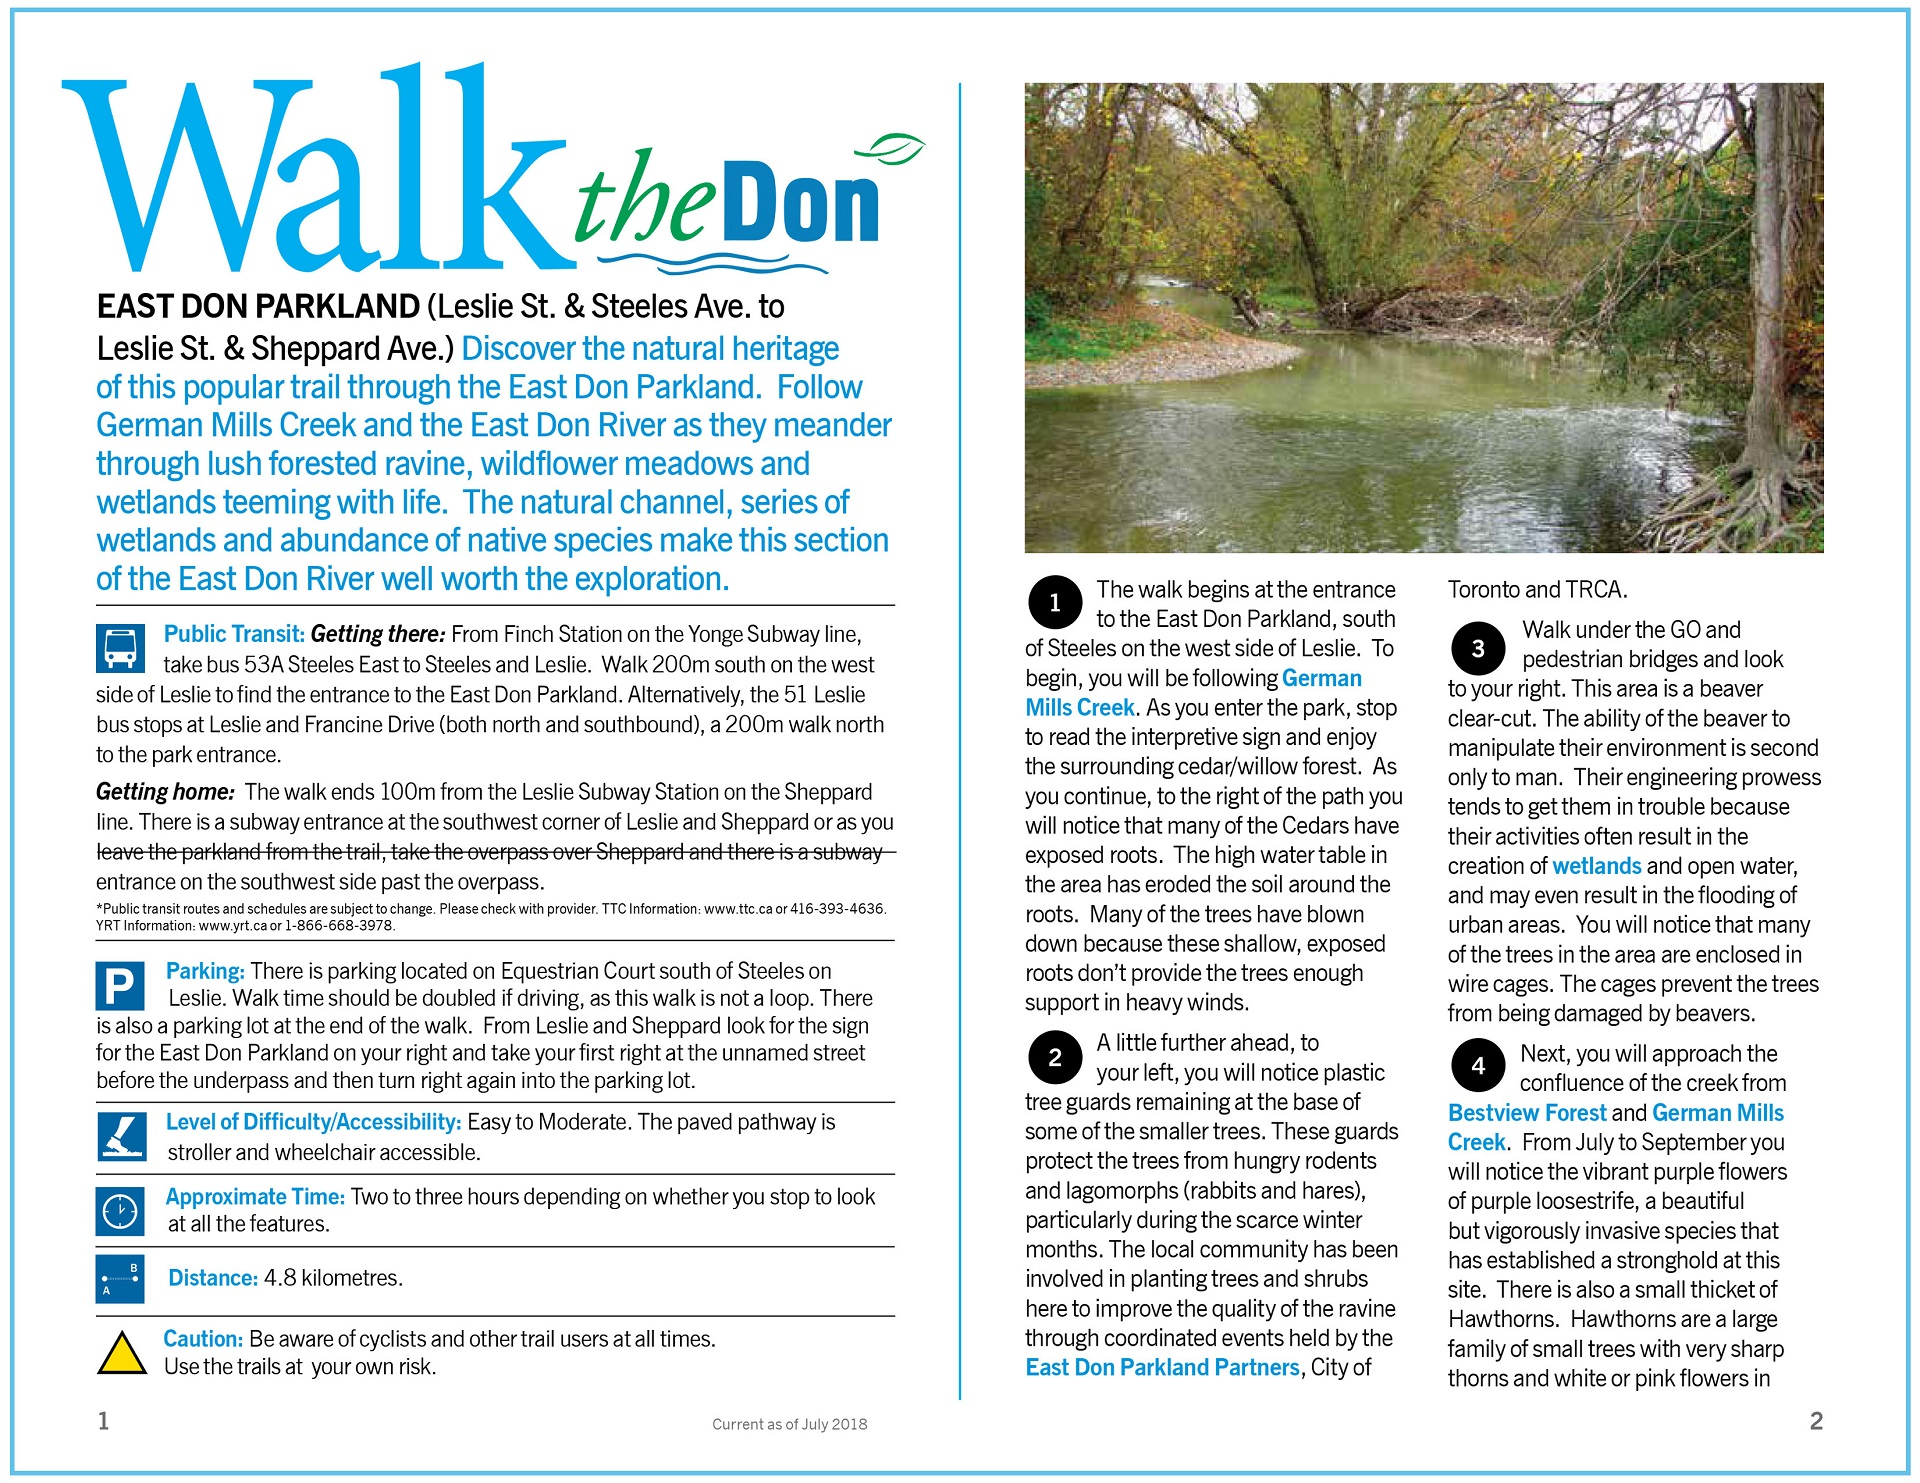 Walk the Don - East Don Parkland Trail Guide